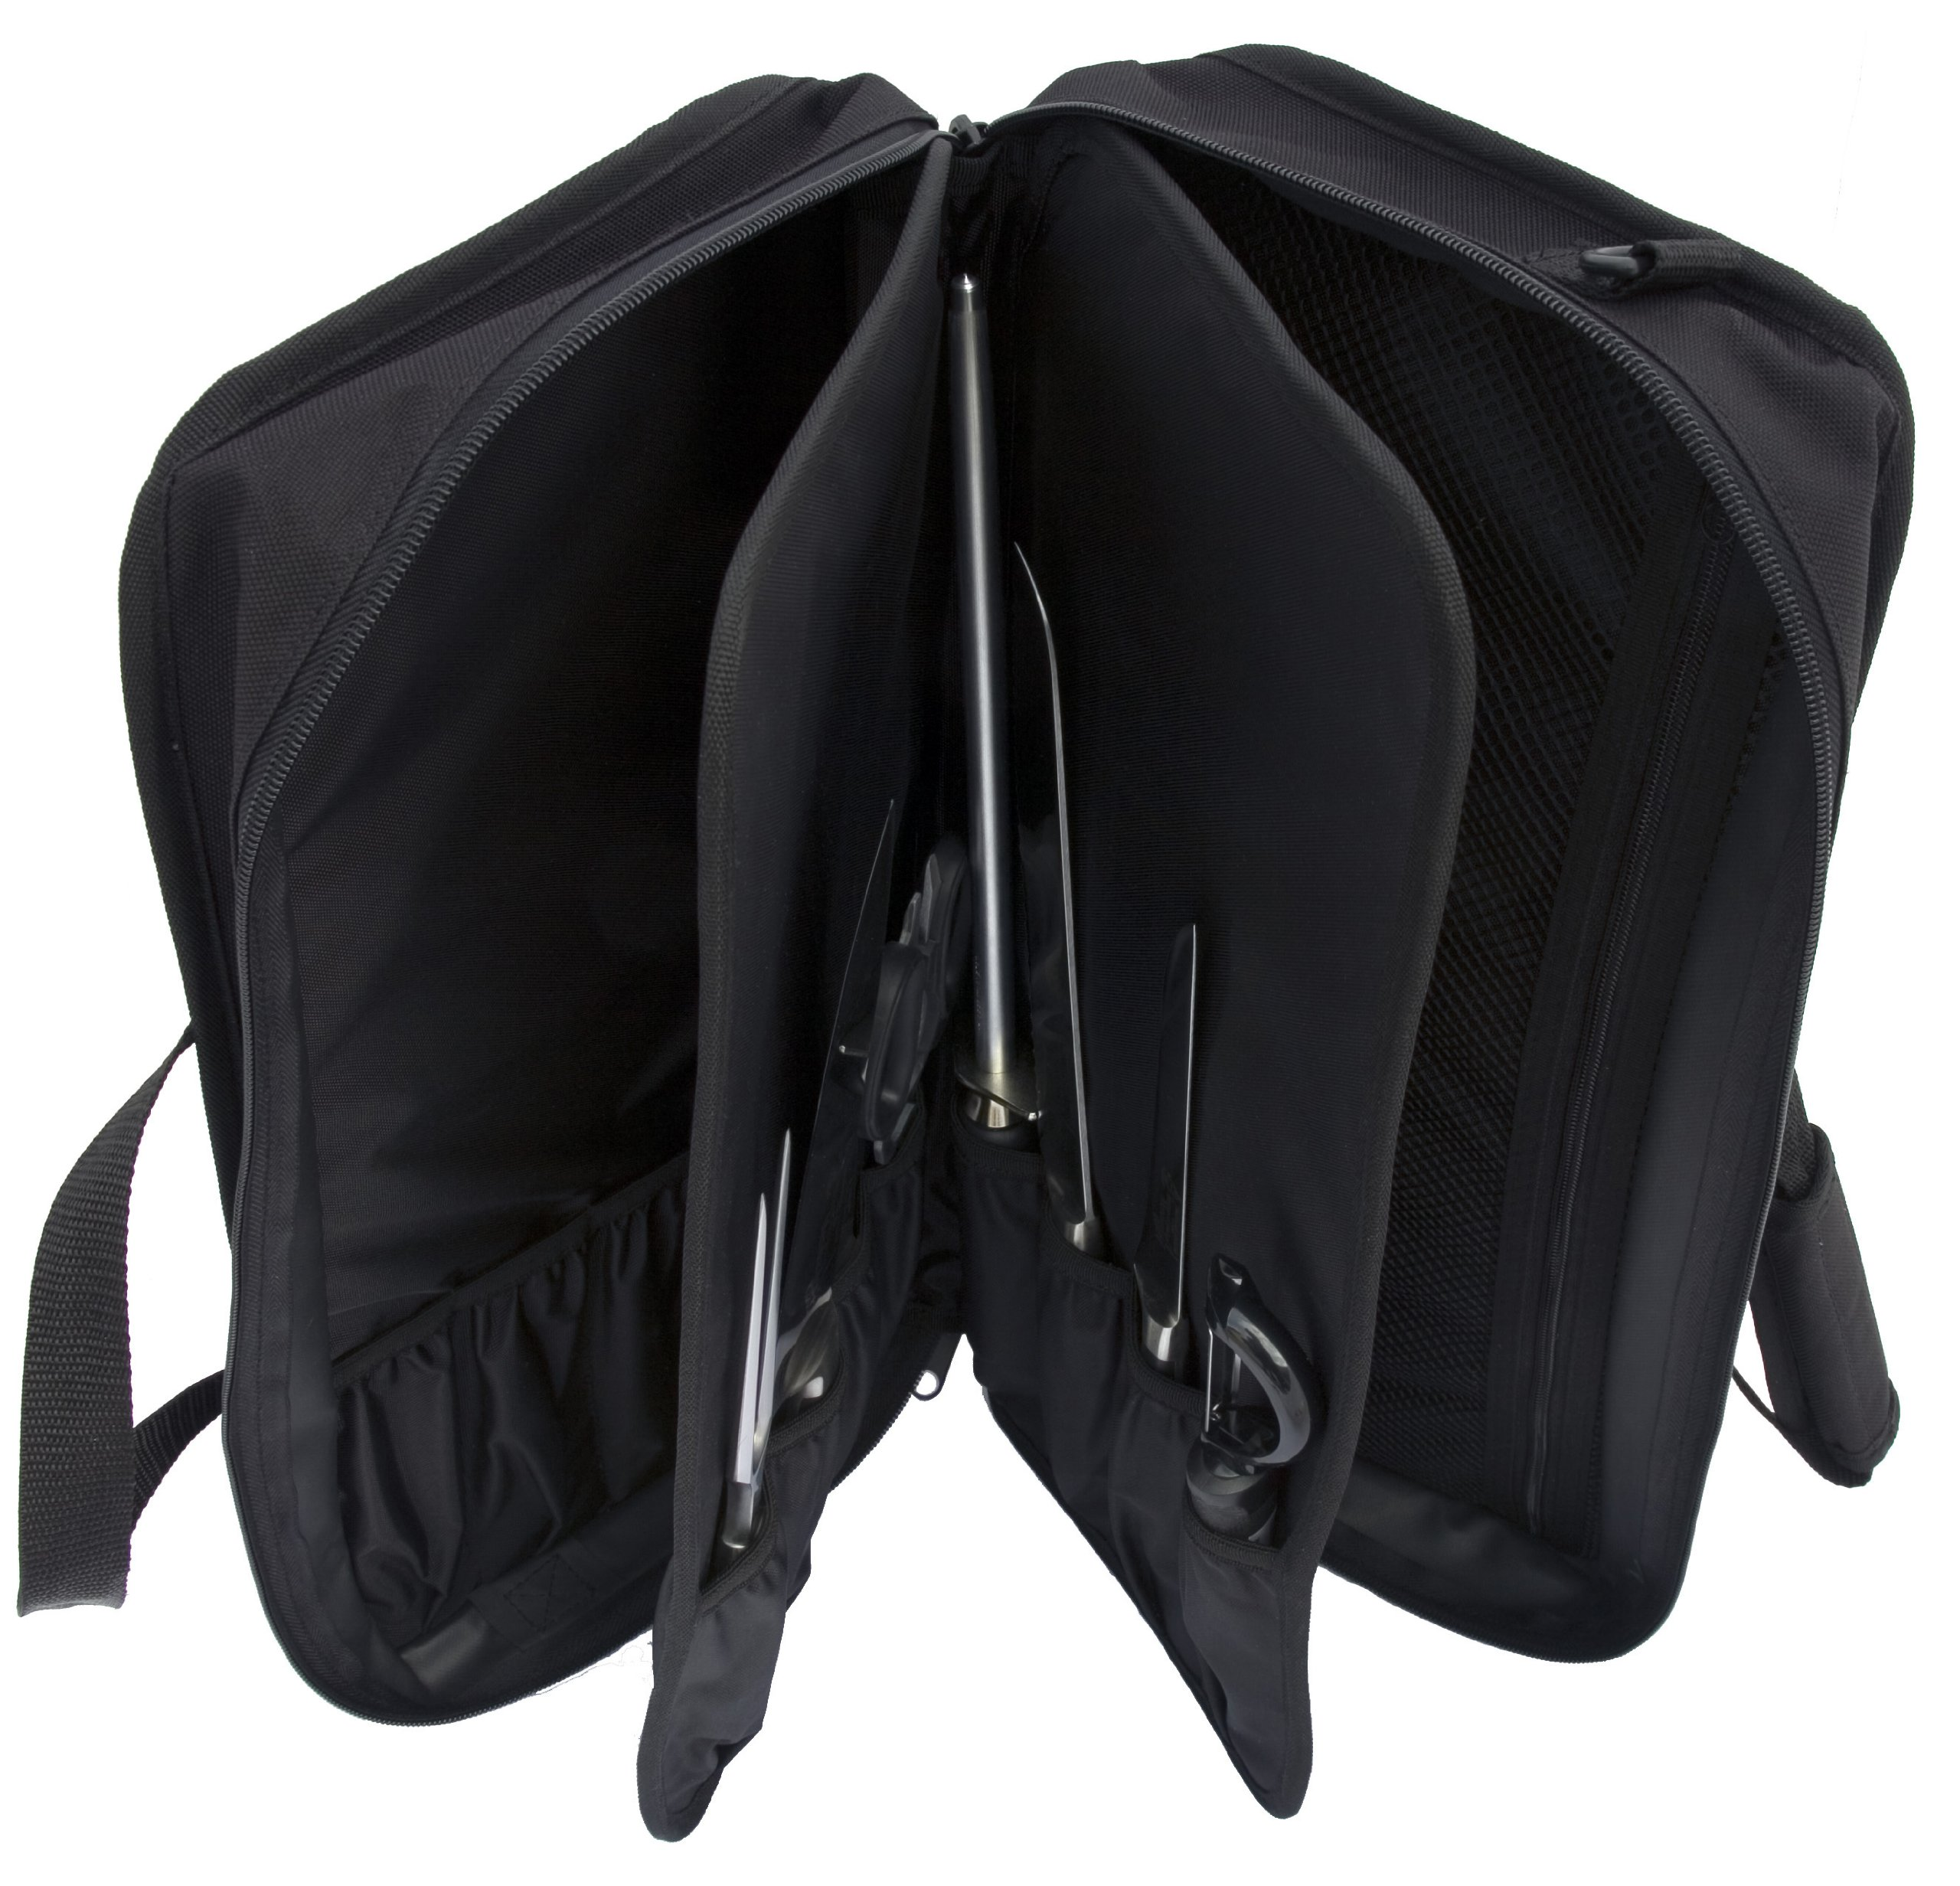 Messermeister 34-Pocket Chef's Satchel with Large Storage Pocket, Black by Messermeister (Image #2)